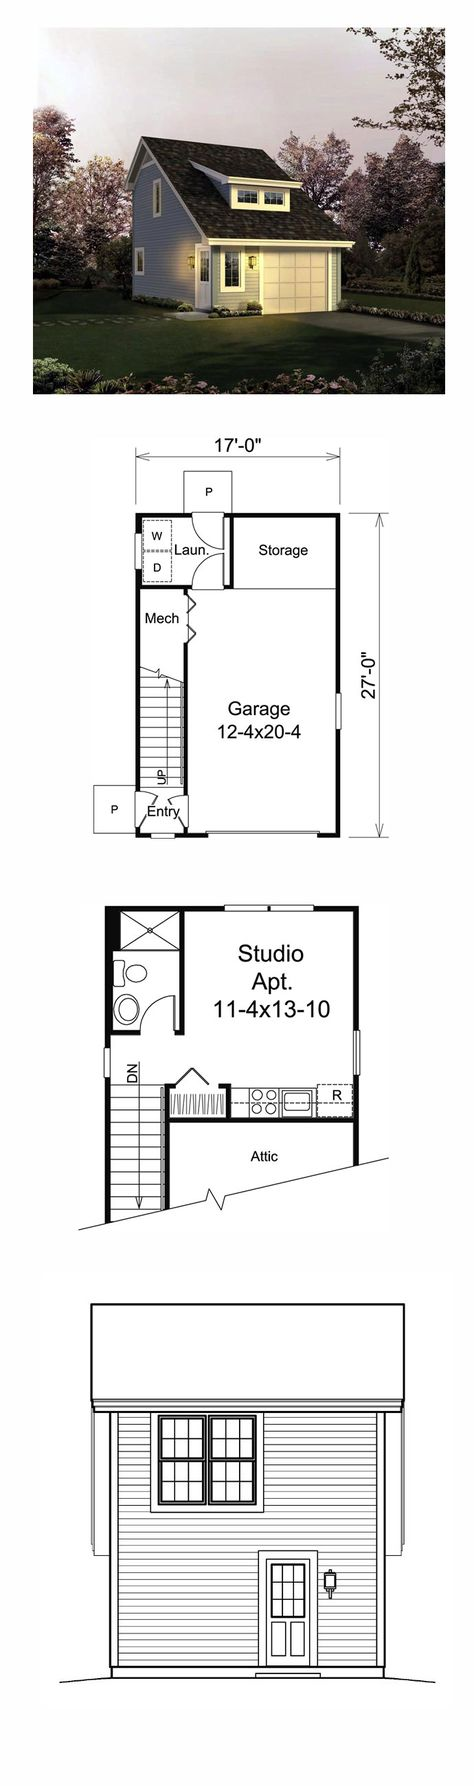 111 best granny flats images on pinterest small houses